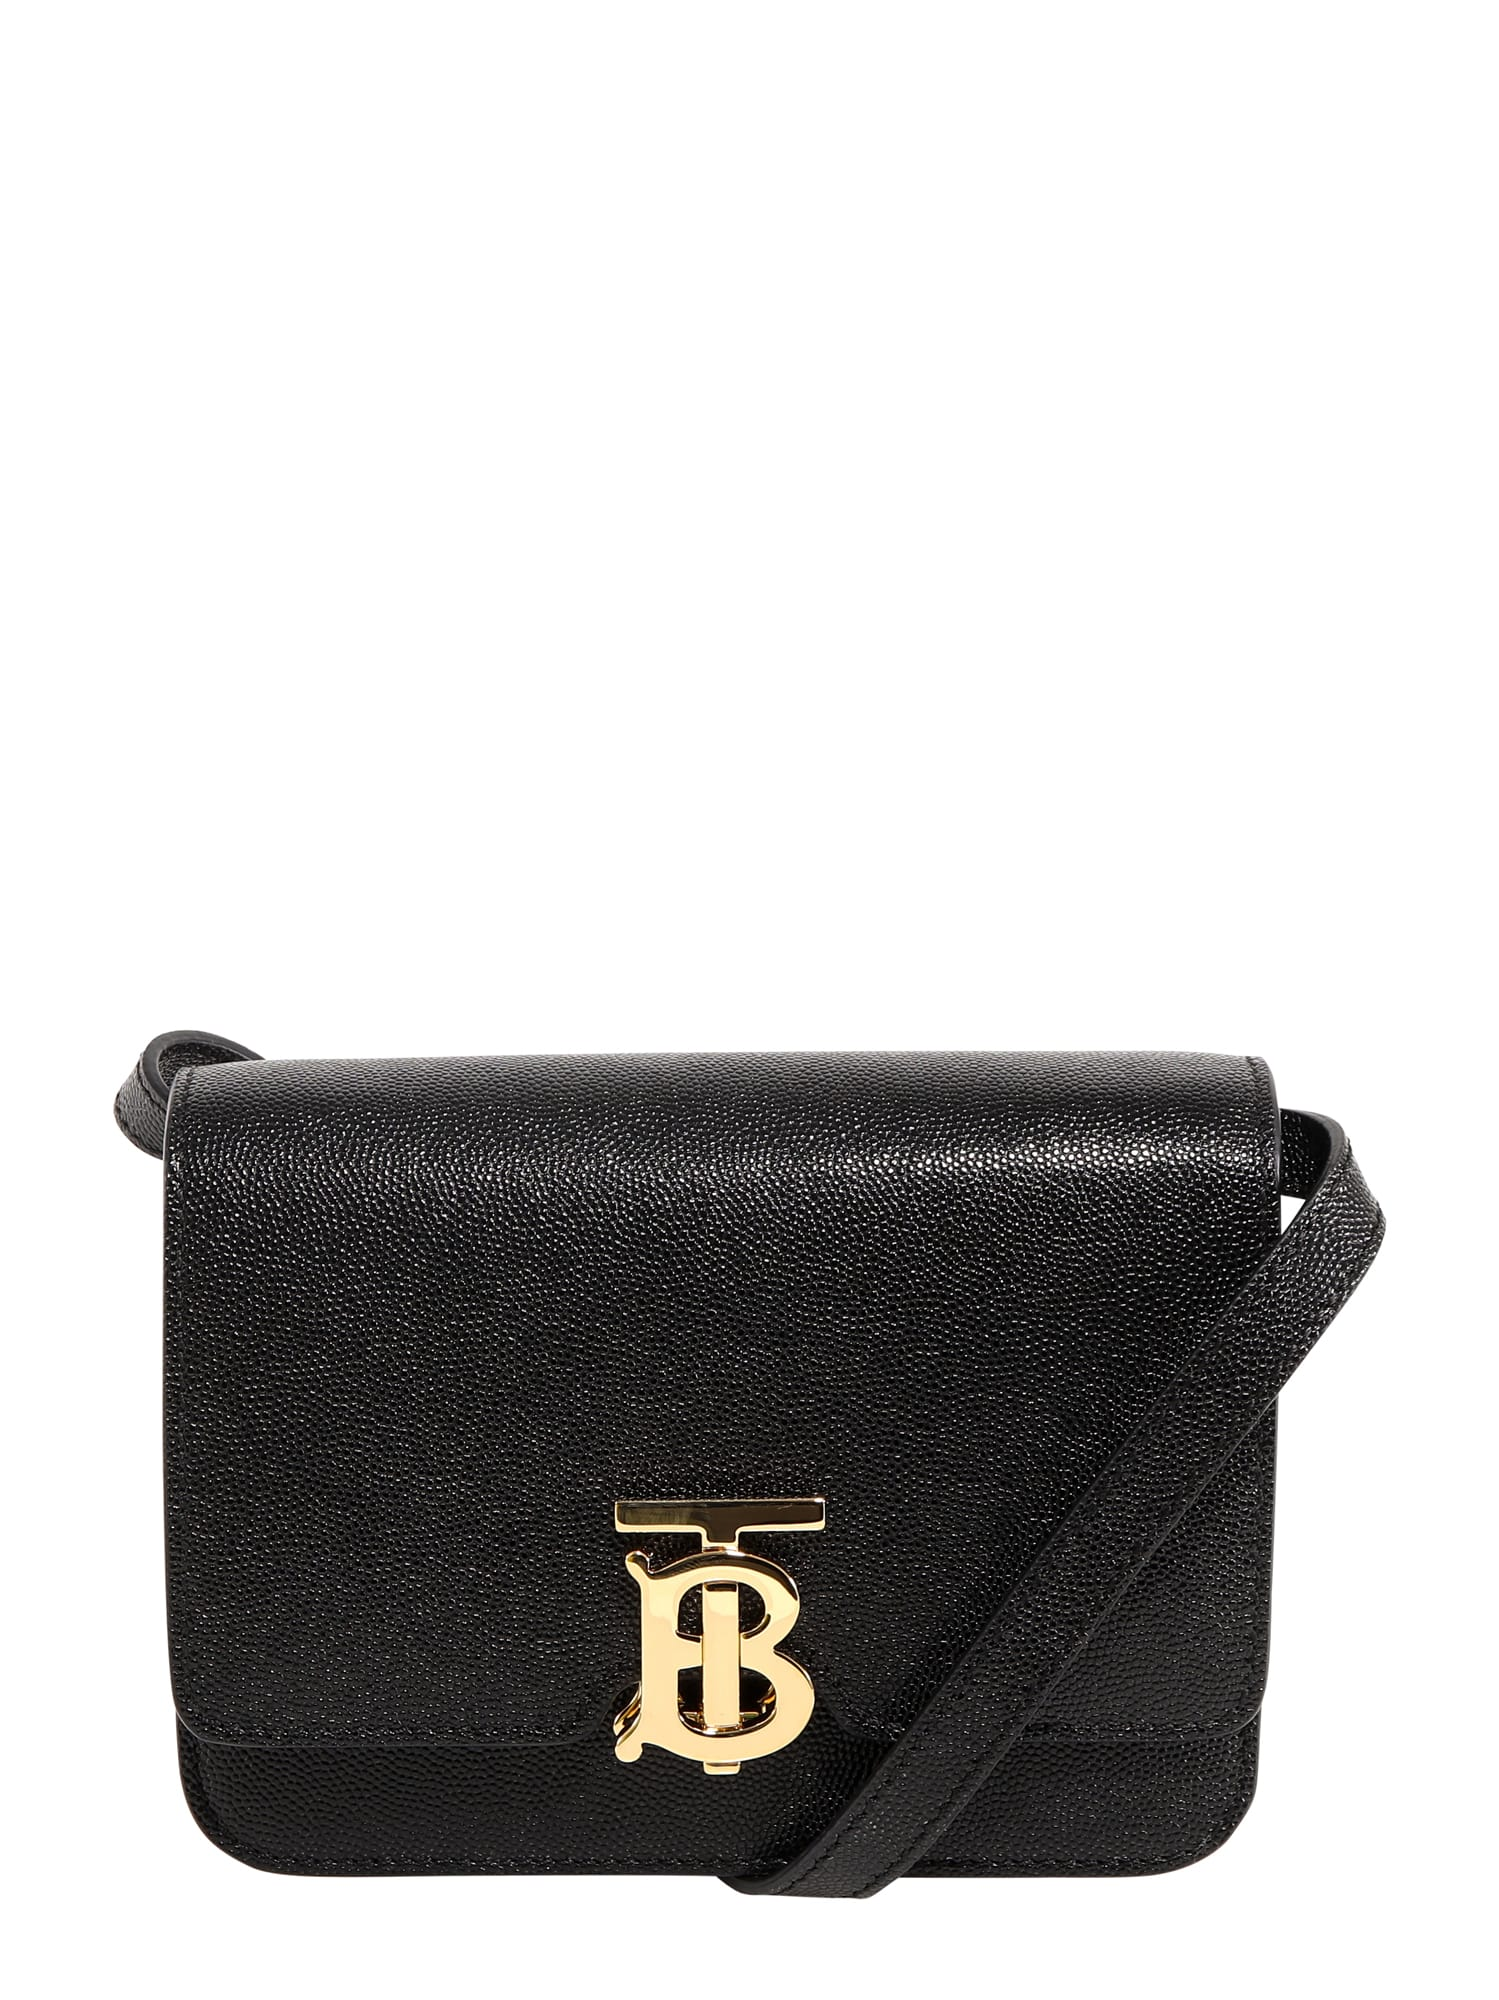 Burberry Leathers SHOULDER BAG